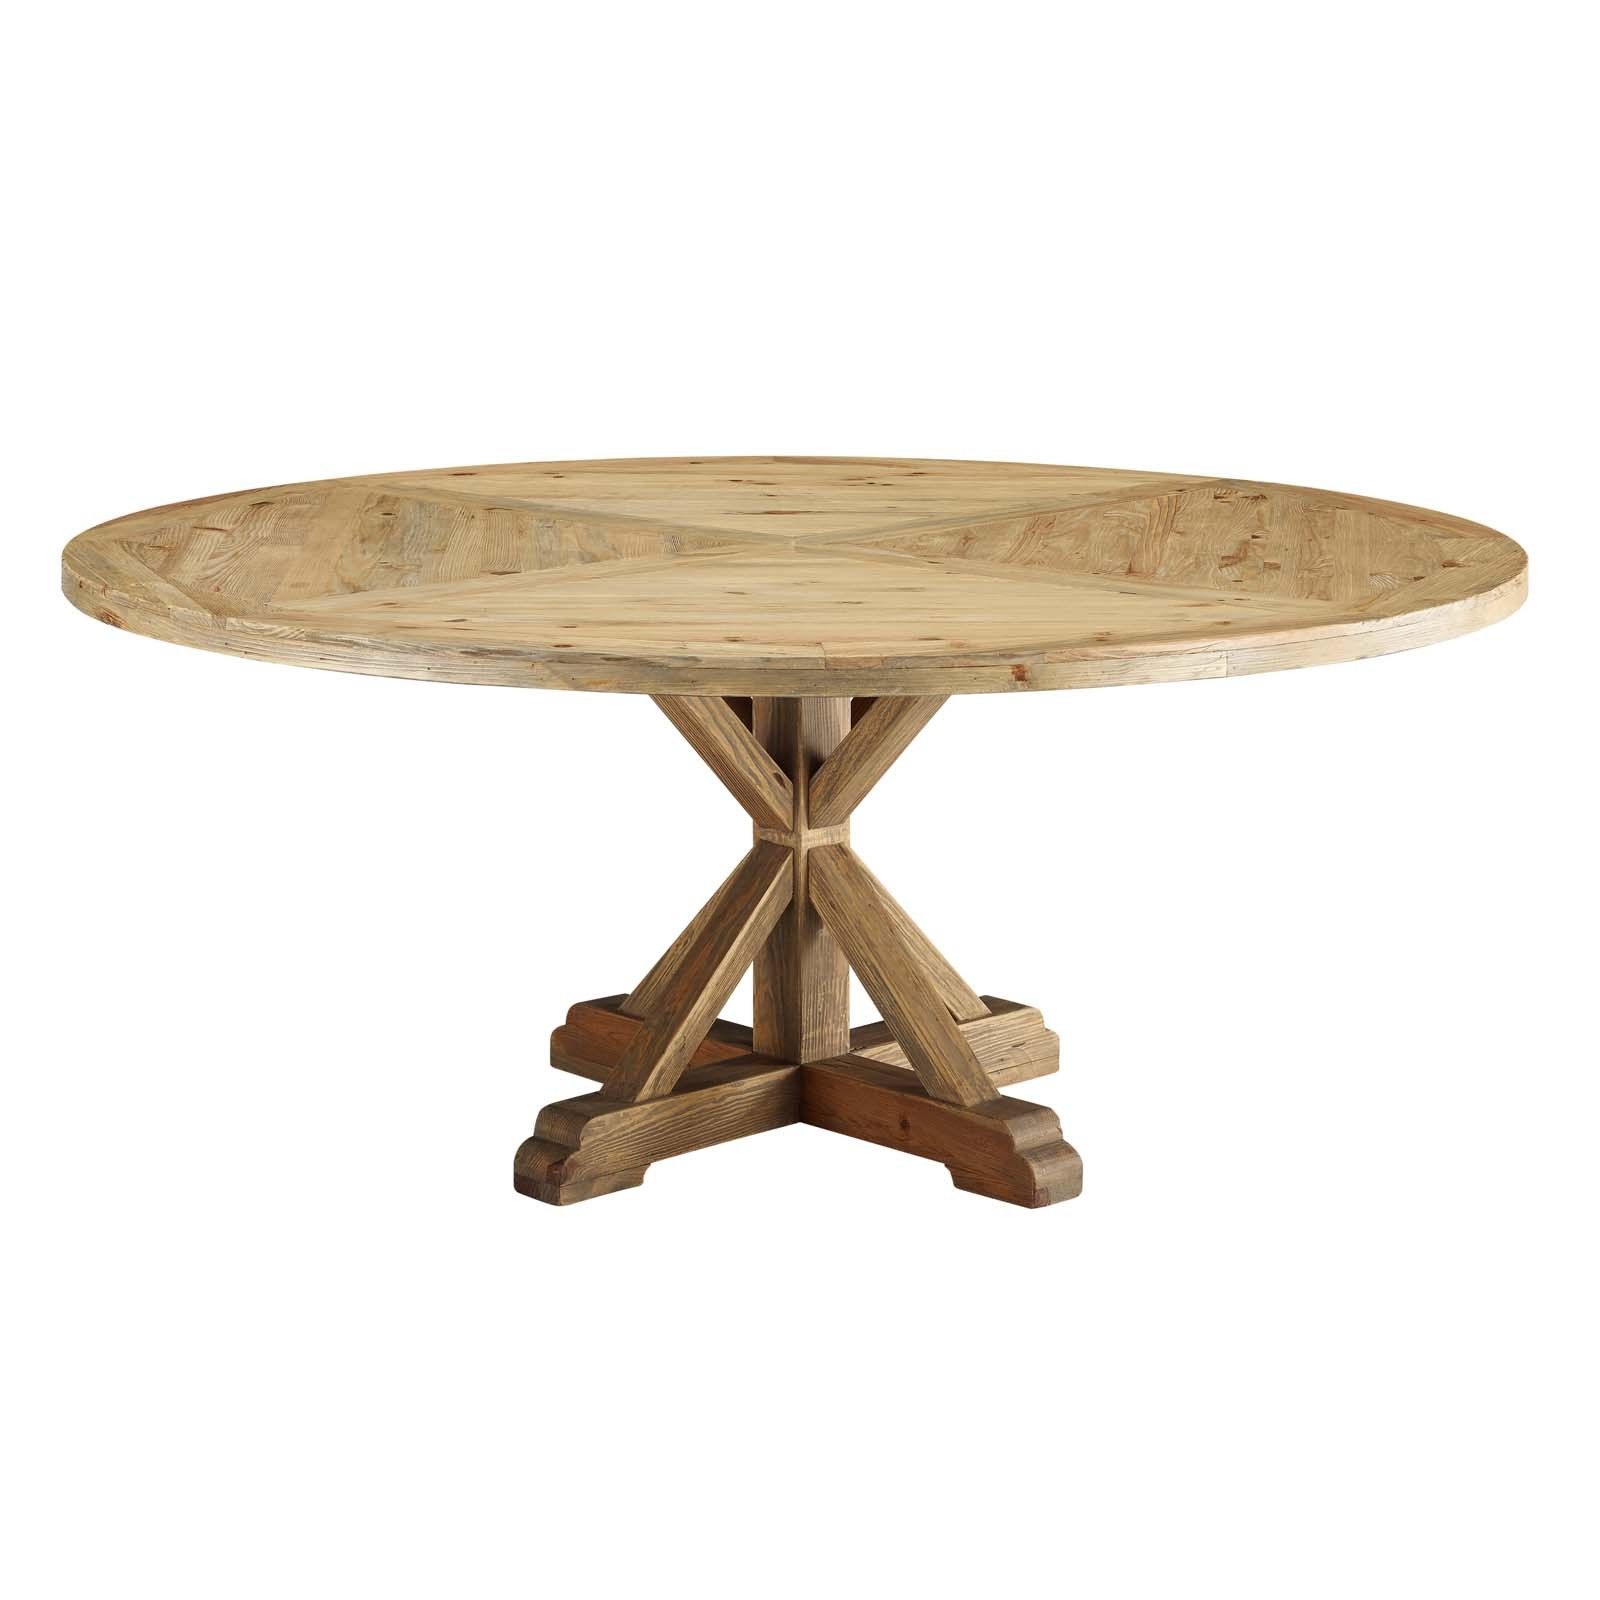 "Stitch 71"" Round Pine Wood Dining Table in Brown"